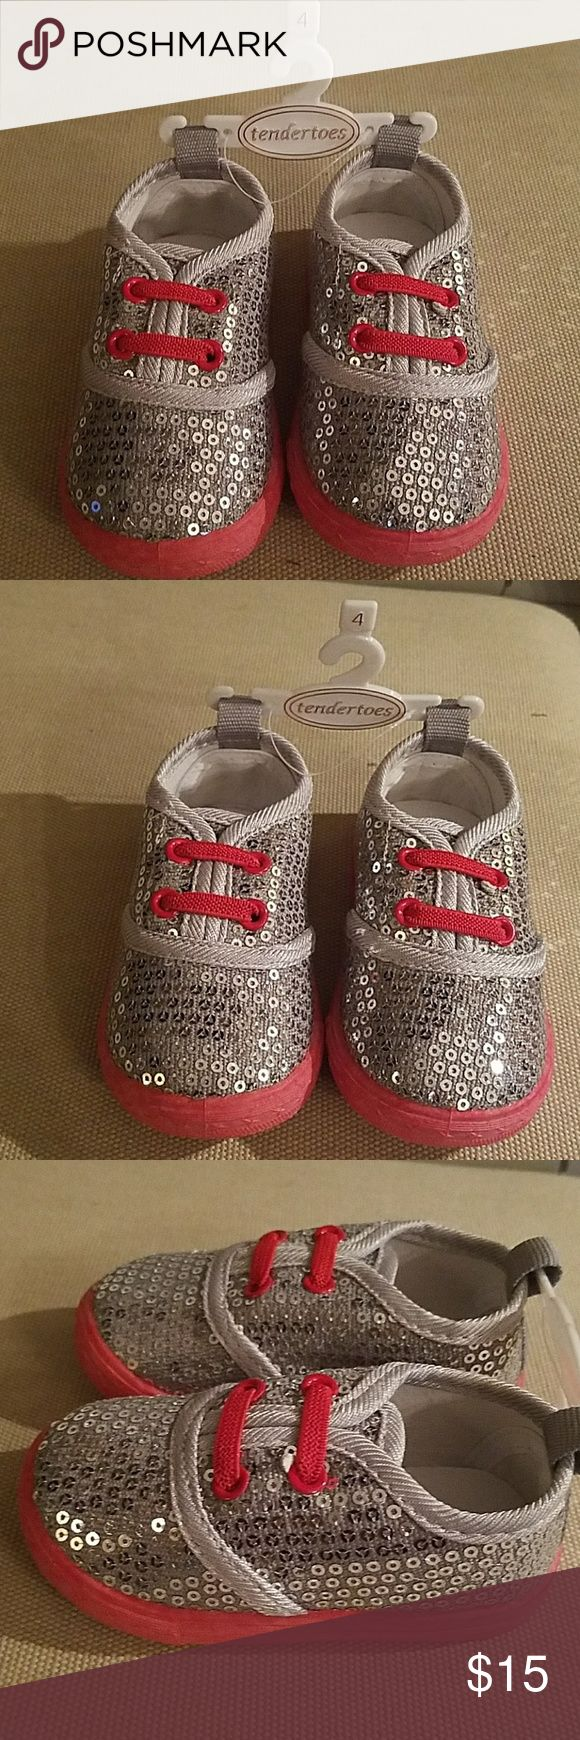 Tender toes baby Diva shoes. Size 4 These sneakers are new they are baby shoes size 4. They will fit an infant size 6 to 12 months. tender toes Shoes Sneakers